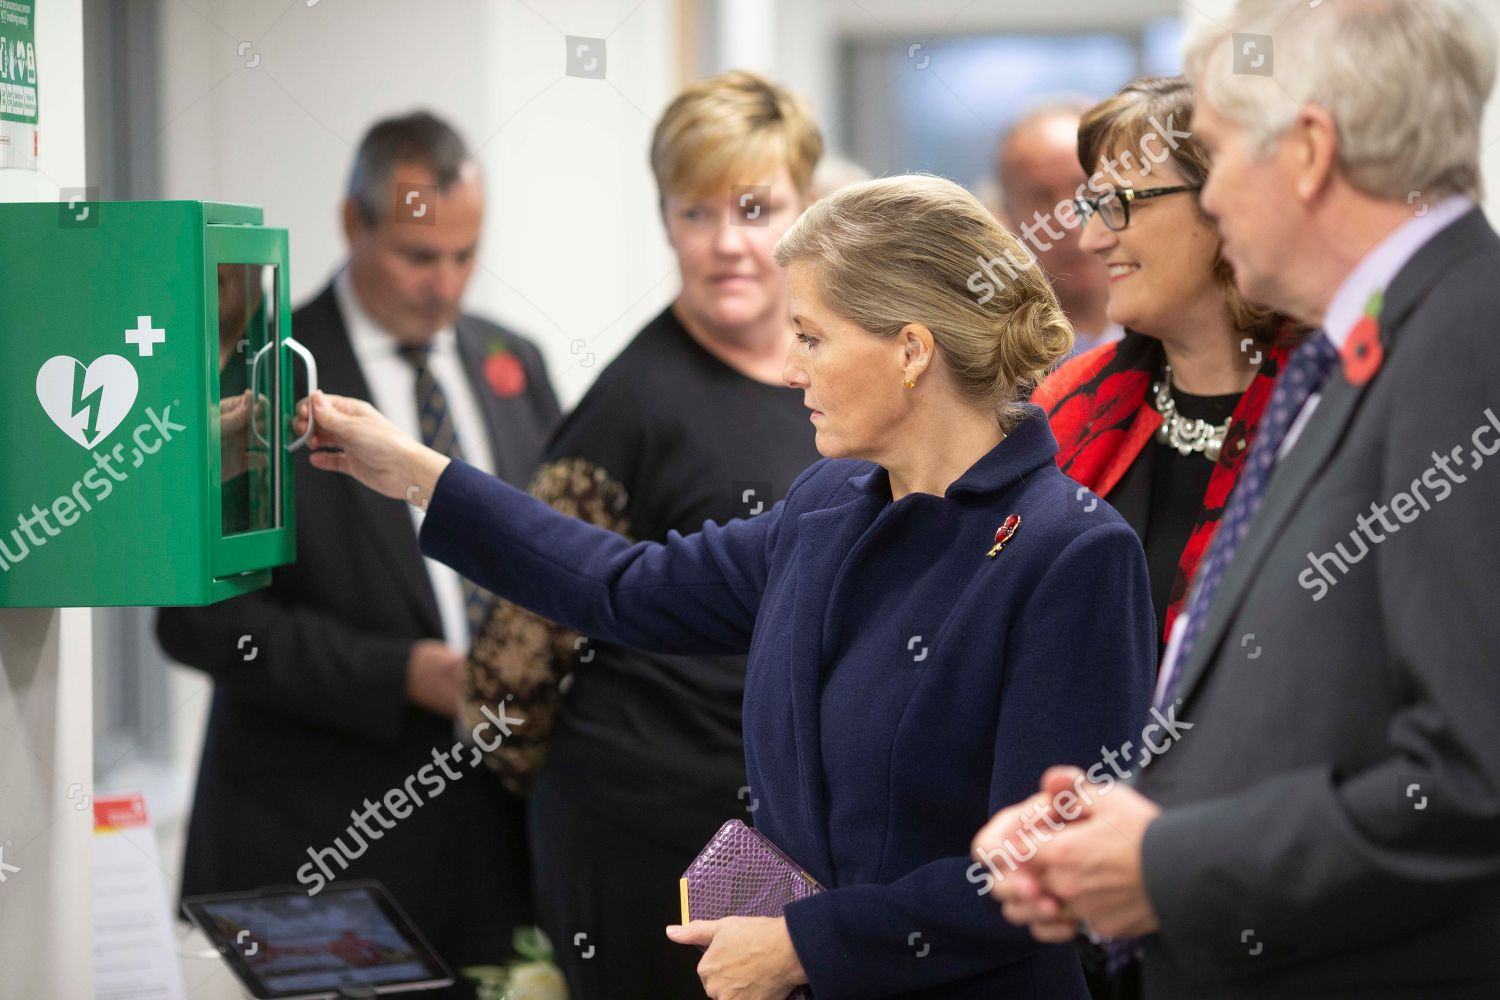 sophie-countess-of-wessex-opens-the-thames-valley-air-ambulance-headquarters-stokenchurch-buckinghamshire-uk-shutterstock-editorial-9968468ac.jpg